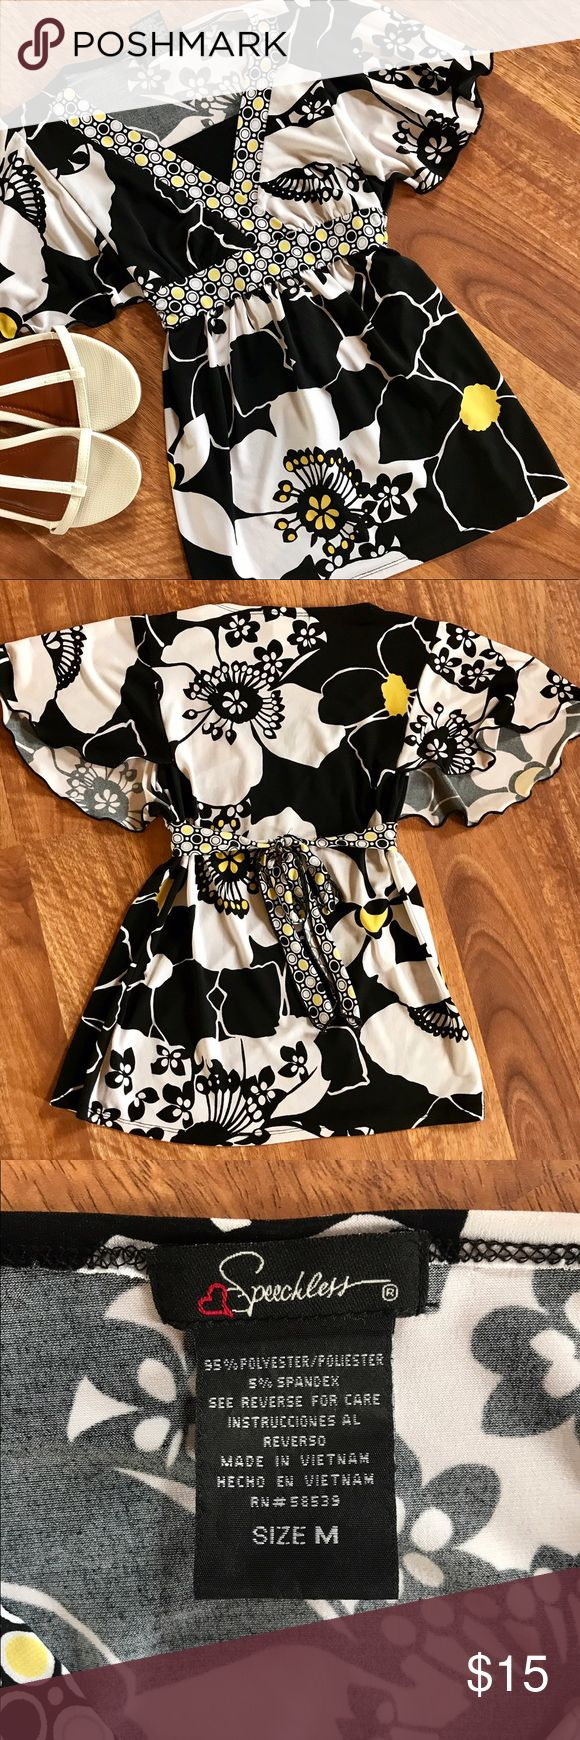 {Speechless} Girl's Flowy Fancy Top Girl's size M Speechless brand yellow/black/white floral w/ polka dots fancy shirt in excellent used condition with no flaws! Features batwing sleeves, waist tie, and black attached panel. Smoke-free home, as always. Bundle and save!!! ***Shoes not included. Speechless Shirts & Tops